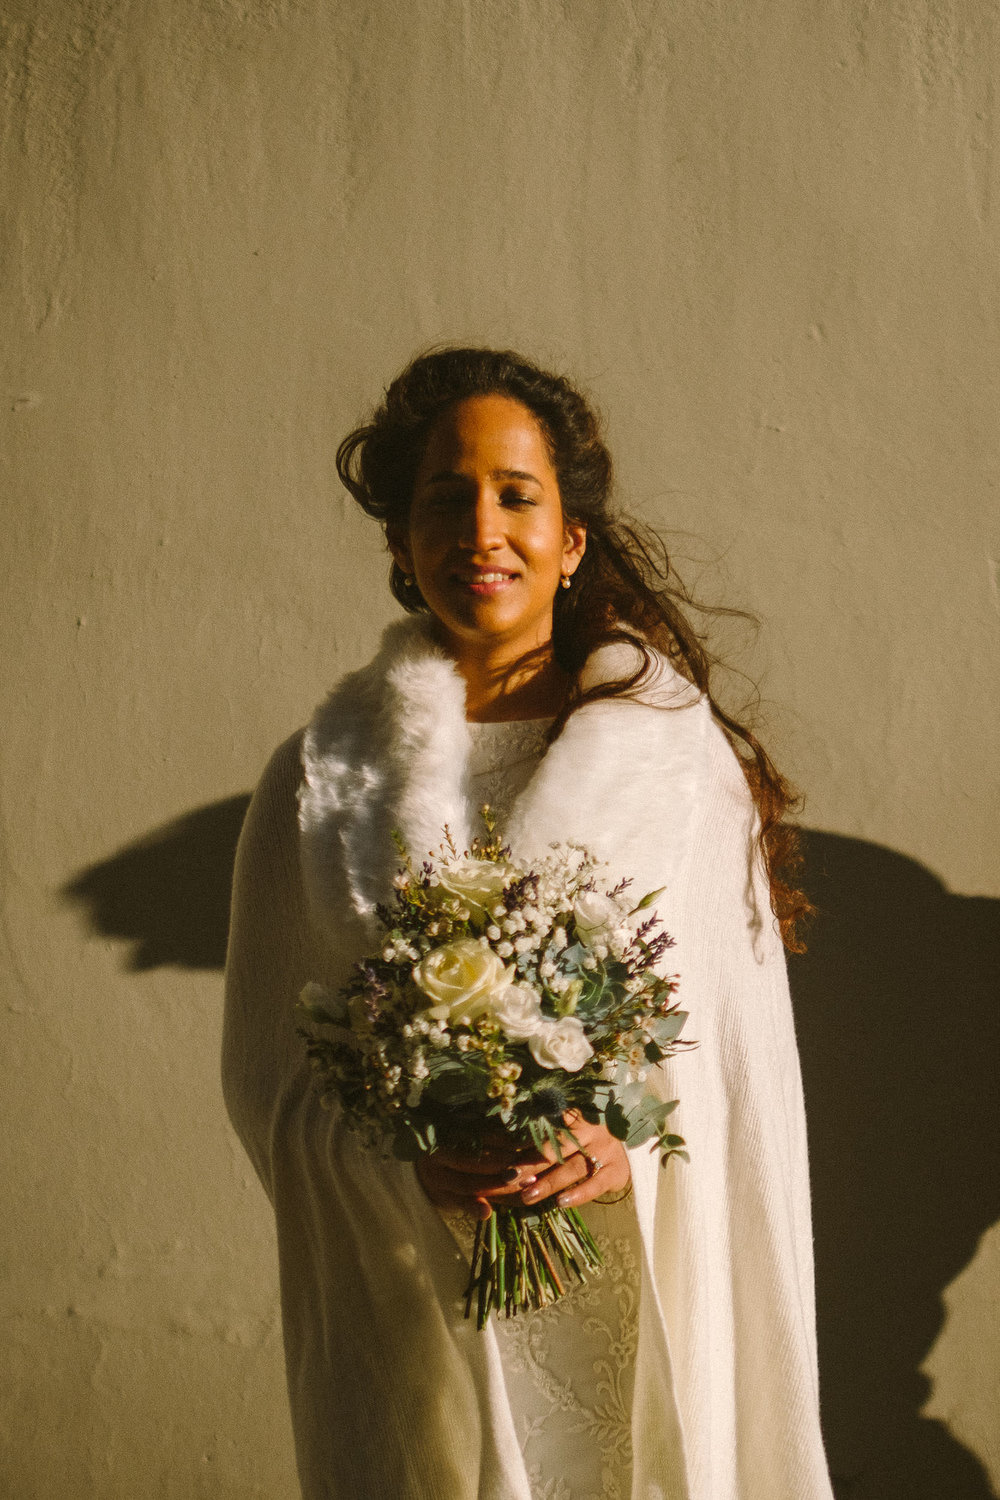 Bride closes eyes as warm winter suns washes over her